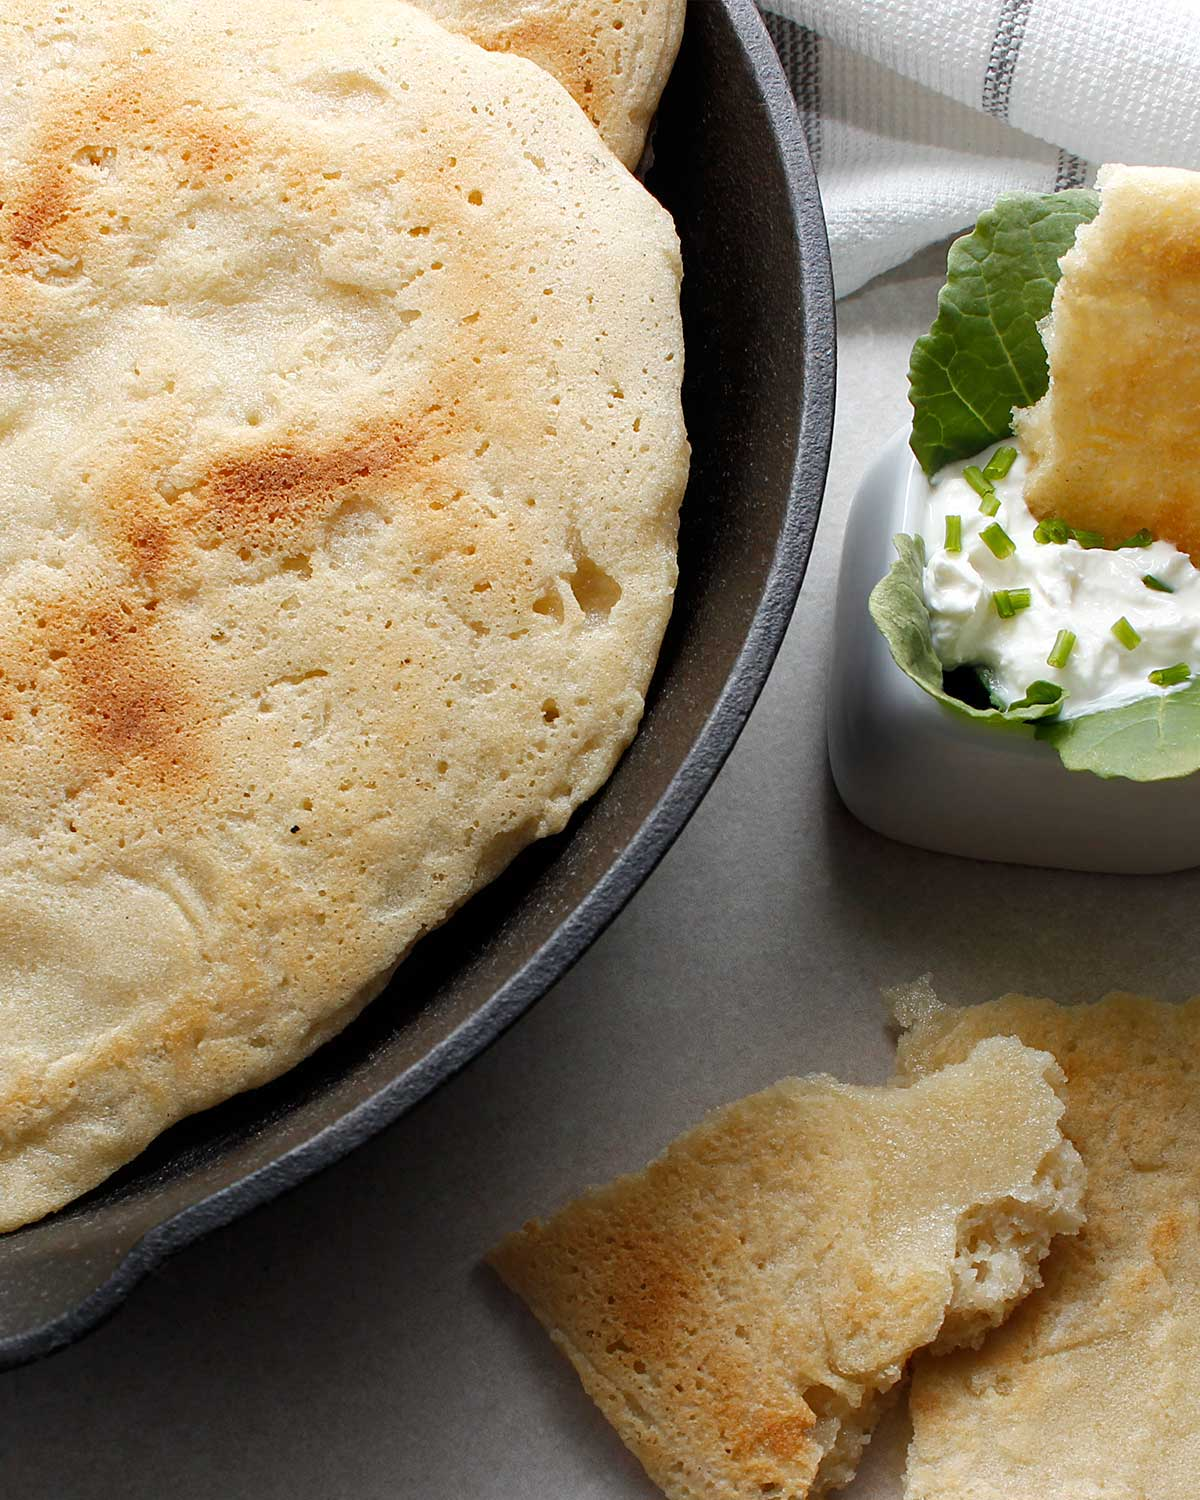 Gluten-free sourdough naan bread in a skillet with pieces on the side with one dipped in a white garlic dip.